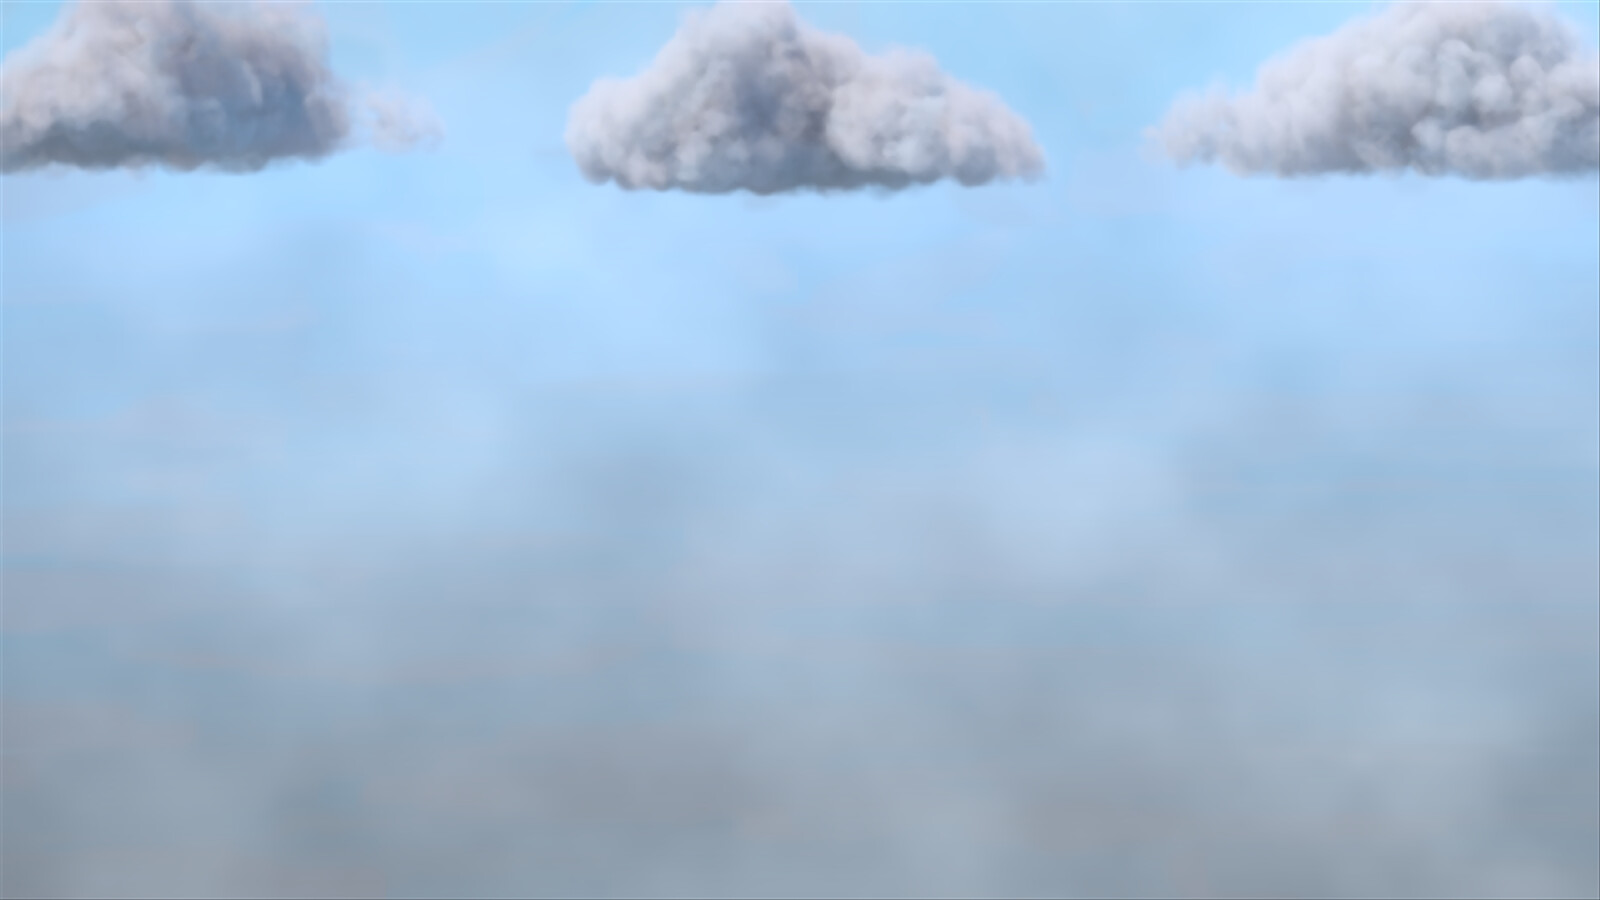 The volumetric clouds are still a bit of a challenge. Wet-on-wet is the most common way of painting clouds, and simulating this effect can be tricky for a 3D render. I am still working on a new method for clouds.